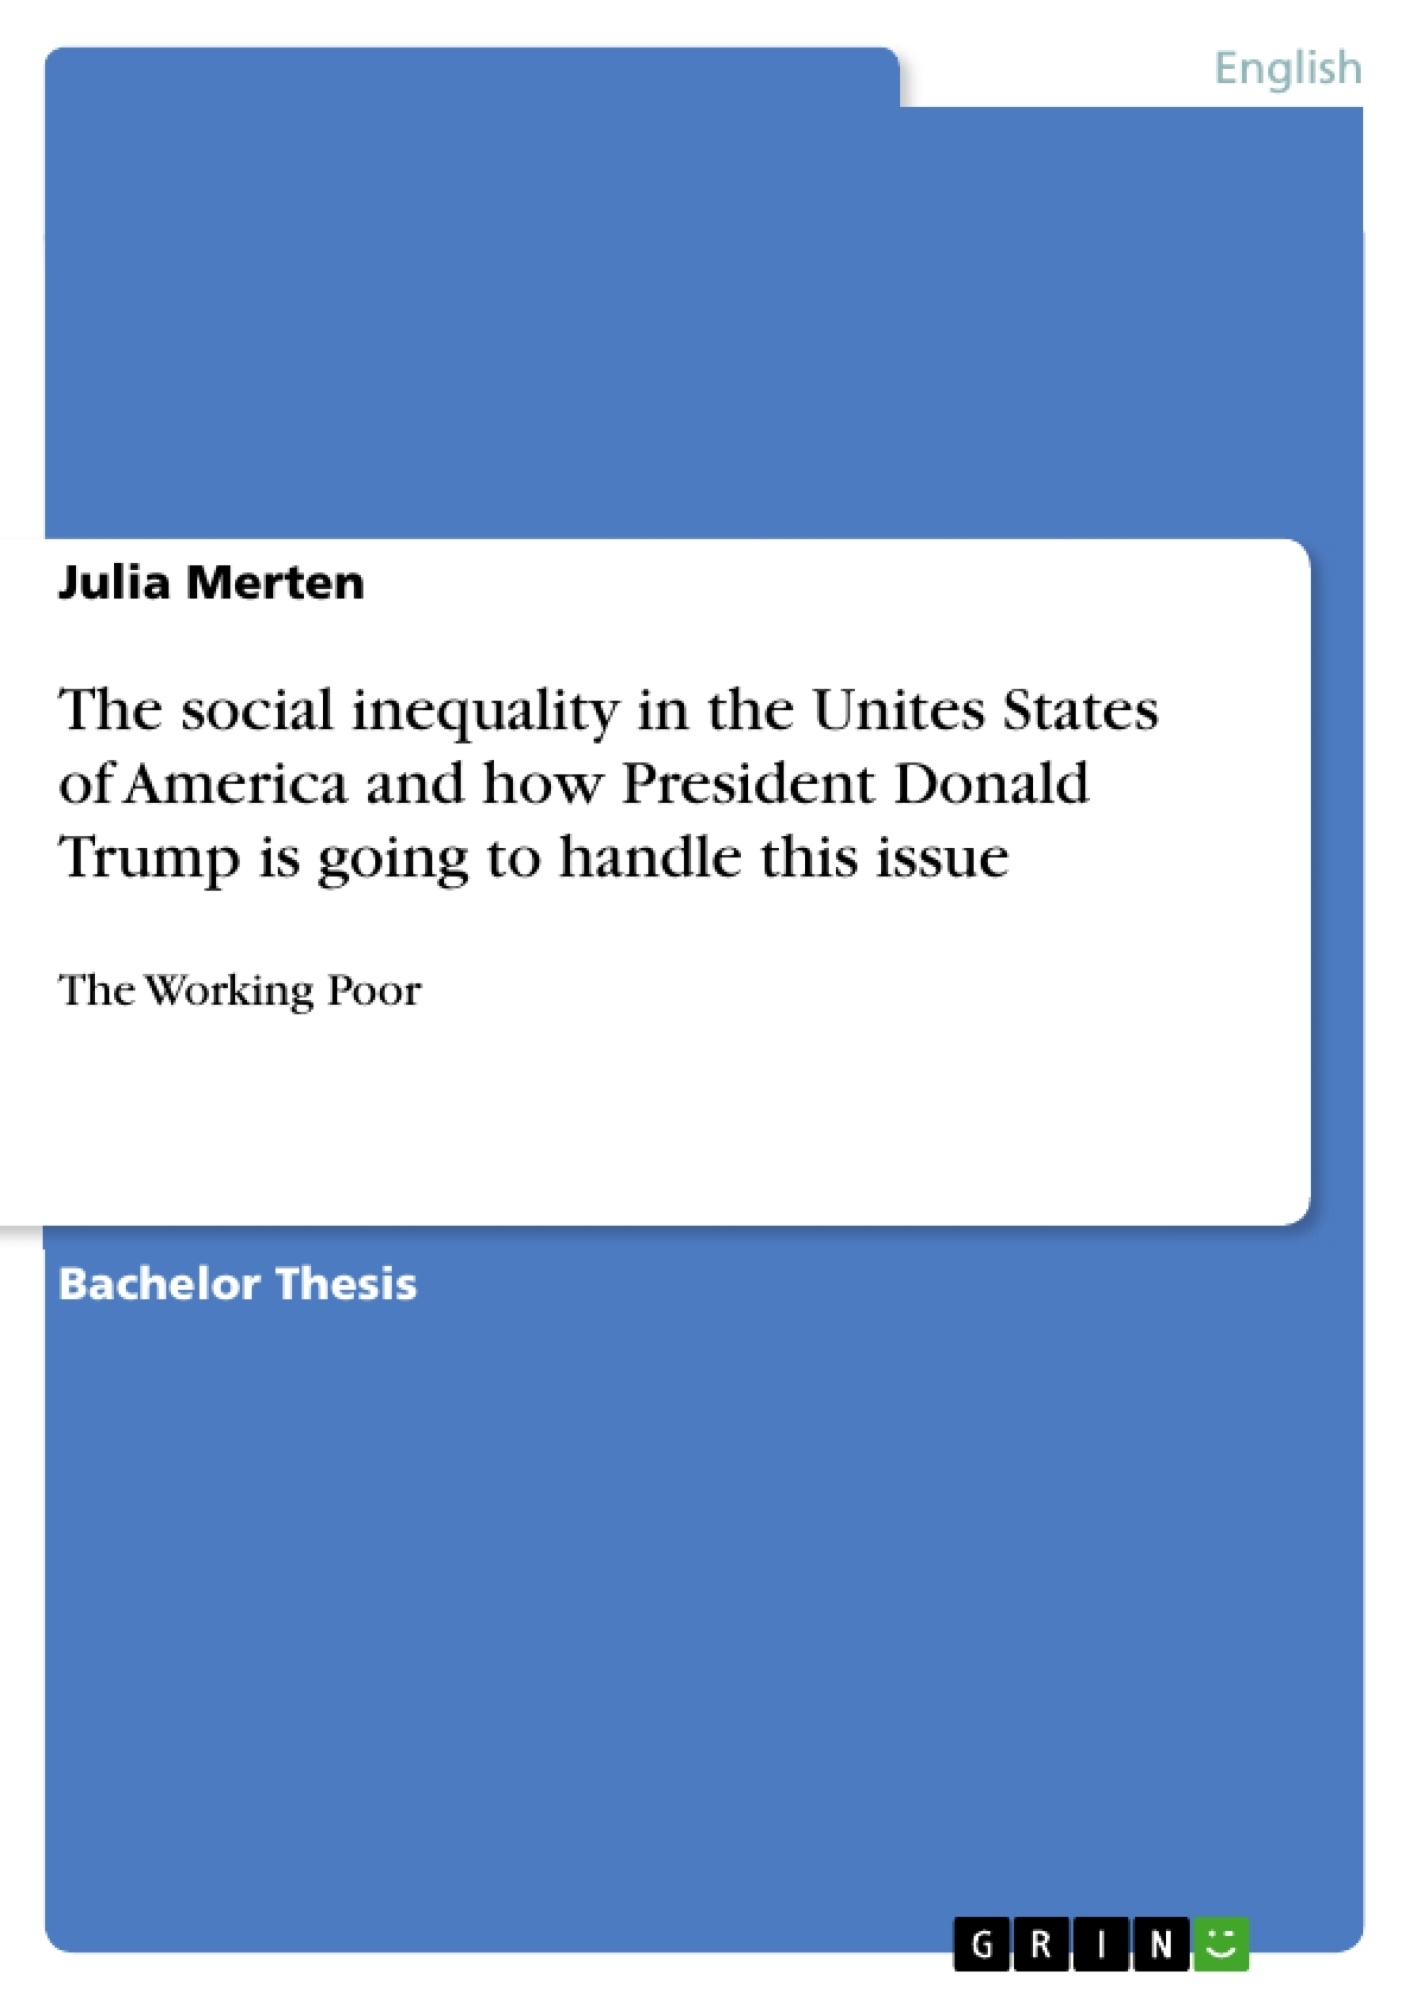 Title: The social inequality in the Unites States of America and how President Donald Trump is going to handle this issue